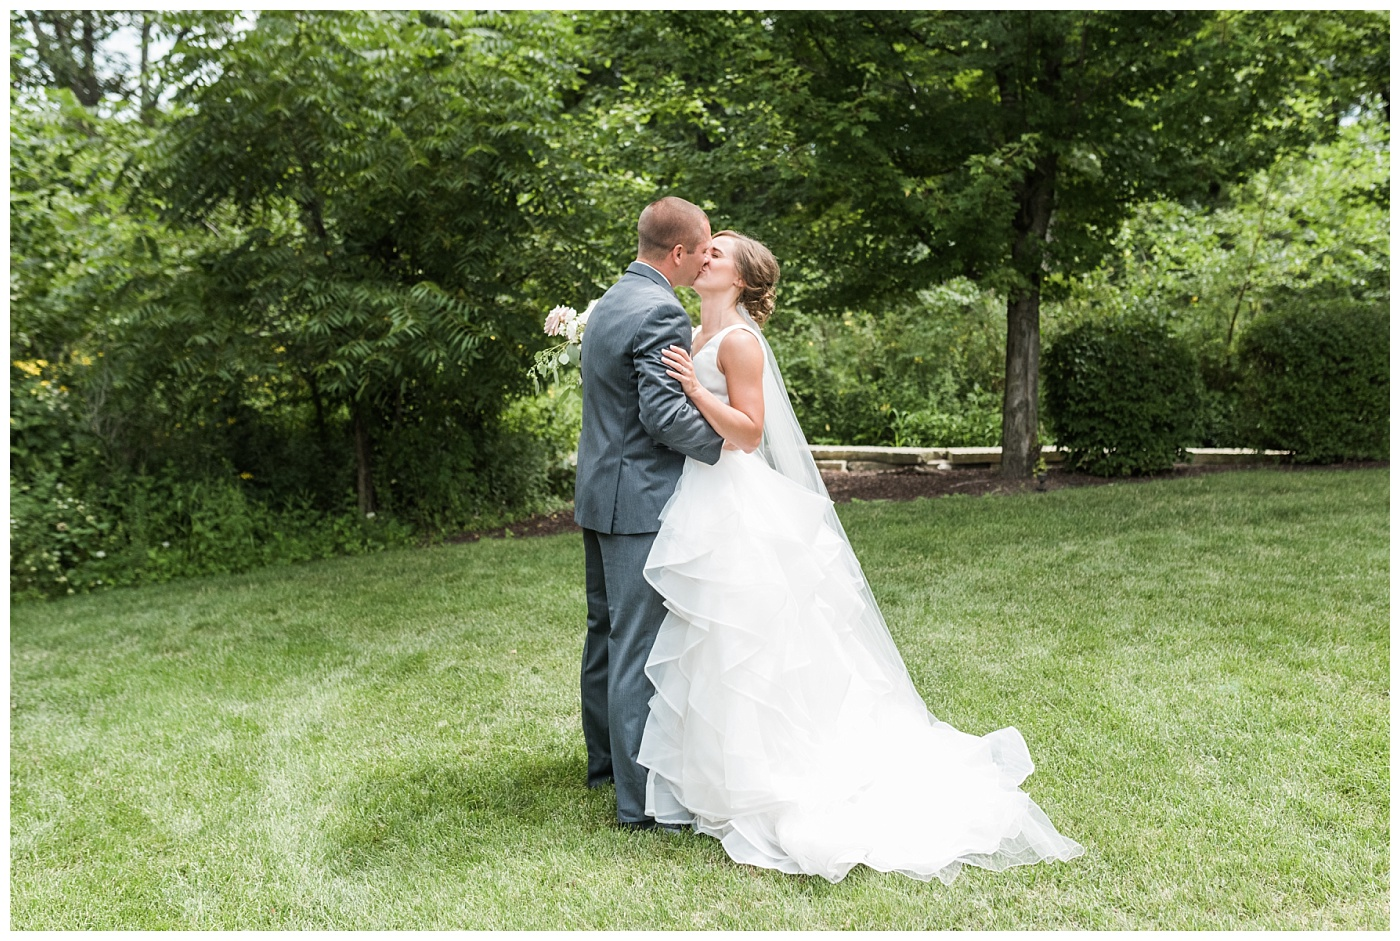 Stephanie Marie Photography Newman Catholic Center Ceremony Bella Sala Reception Tiffin Iowa City Wedding Photographer Chelsey Justin Meyers_0015-1.jpg